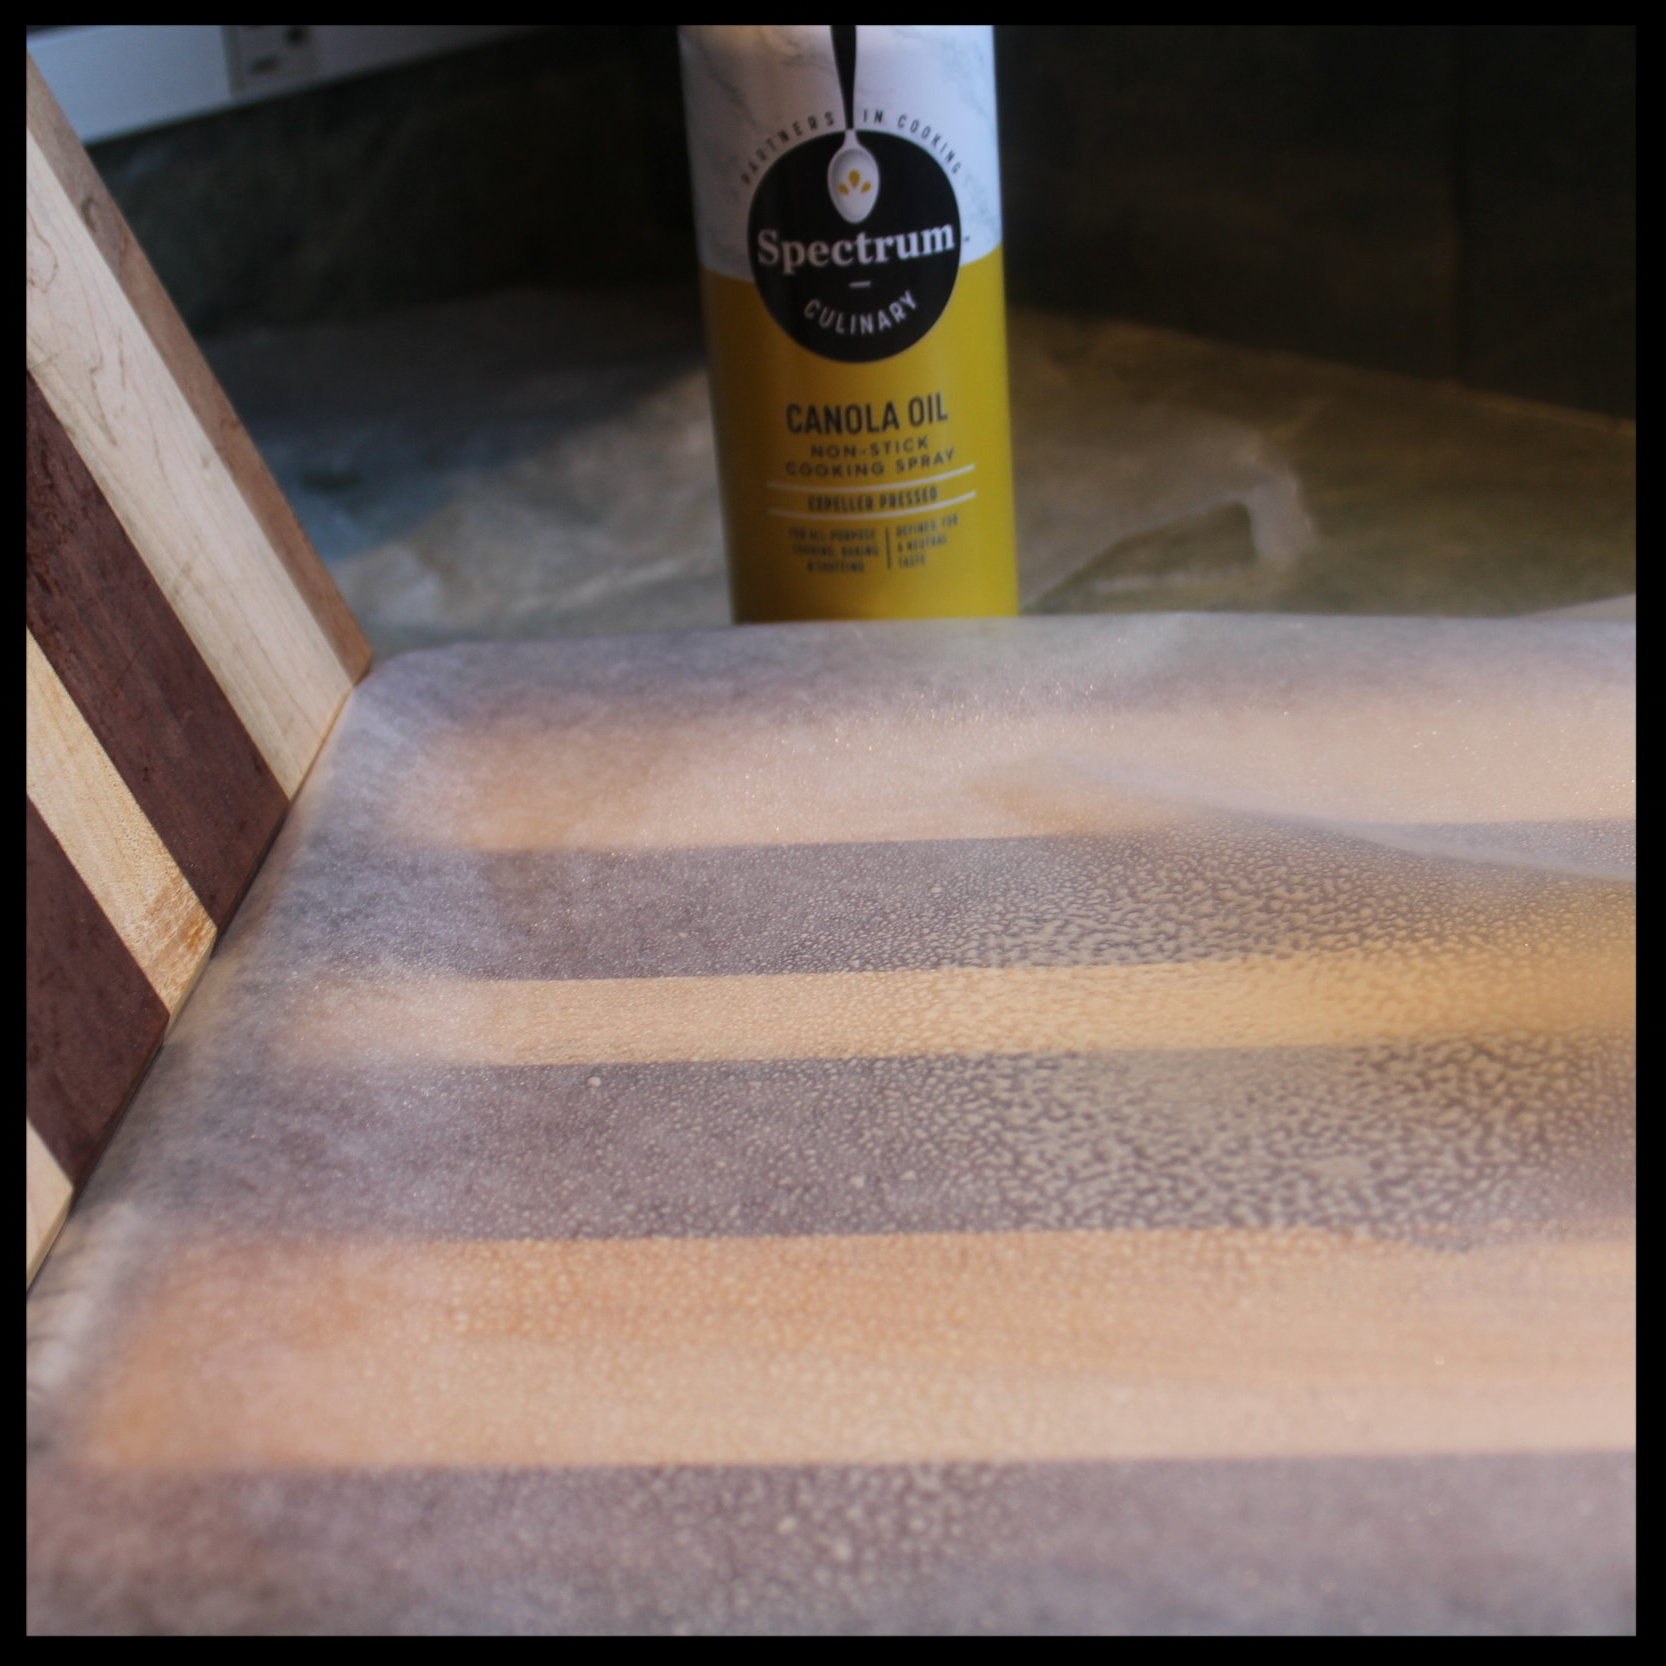 6. Whatever kind of press you use needs to be lined. Don't use plastic wrap or parchment - they will stick to the dough. The best thing to line your press with is waxed paper, sprayed lightly with vegetable spray. (This keeps your press clean, too!)